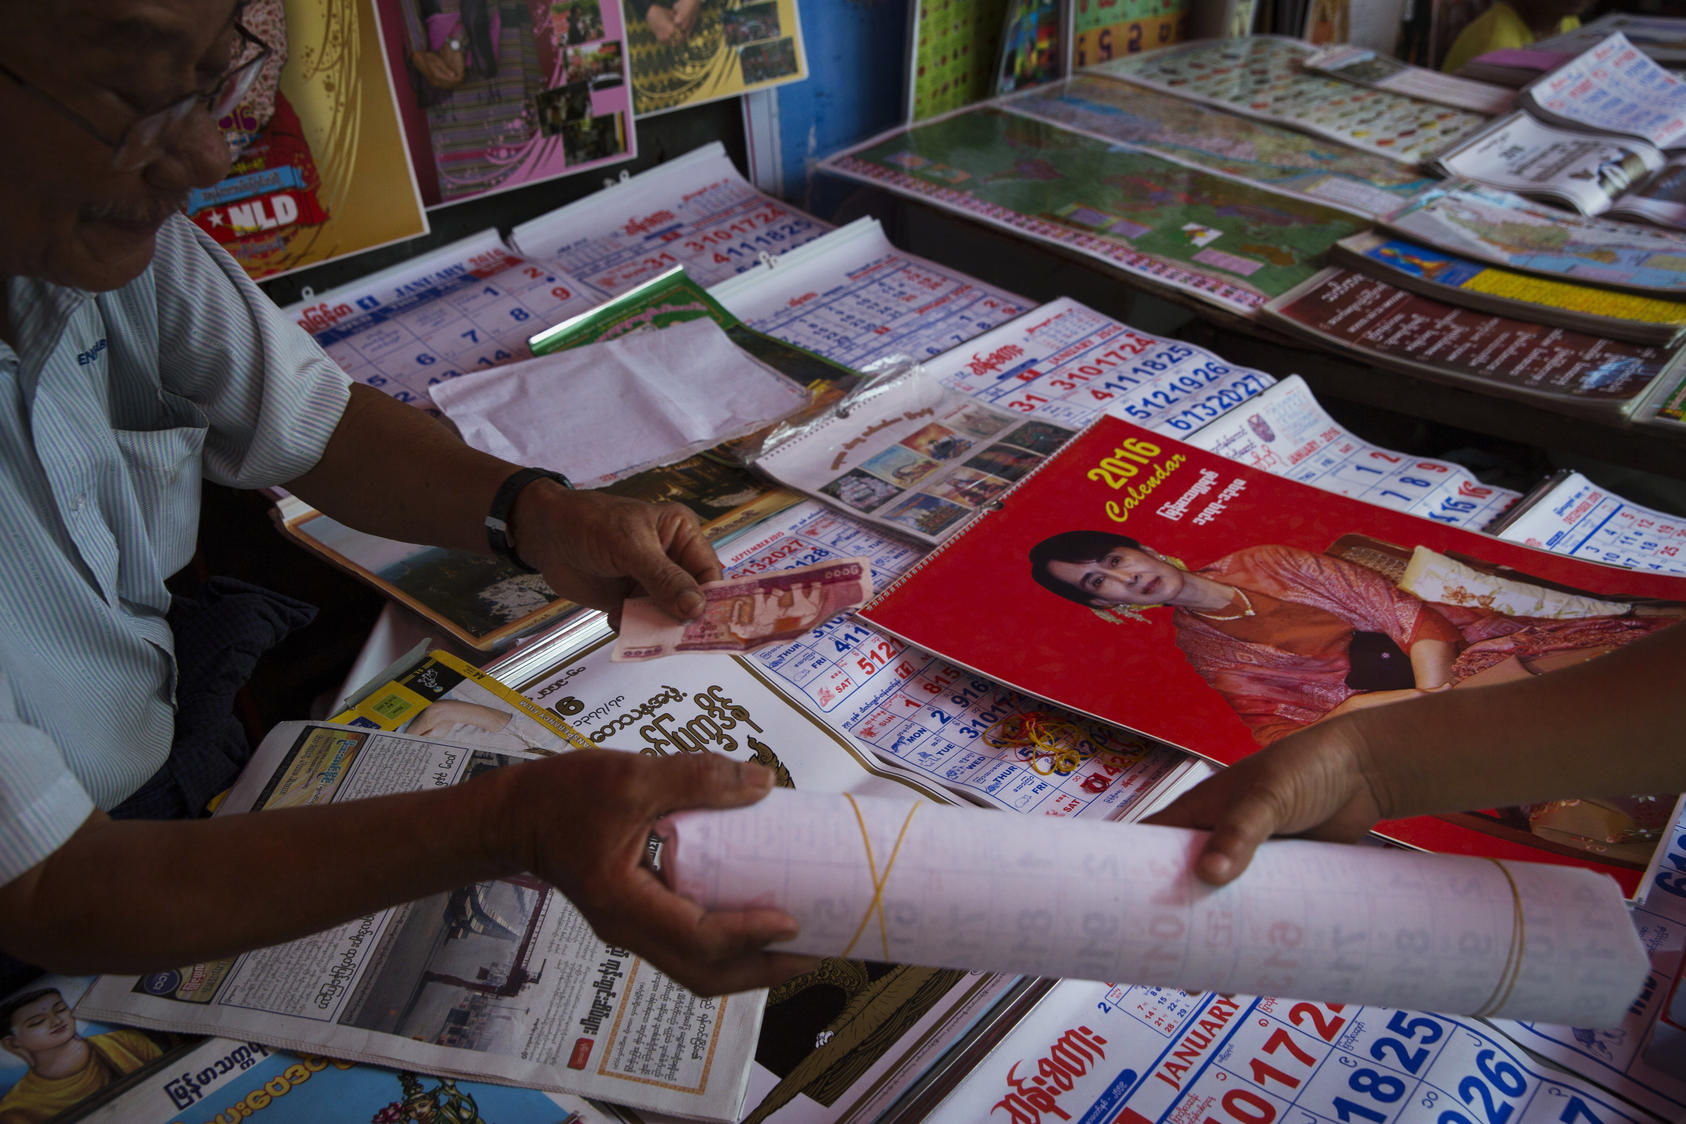 A woman purchases a calendar of Aung San Suu Kyi – who says she plans to circumvent the ban on her becoming president that the generals wrote into the Constitution – in Yangon, Myanmar, Nov. 10, 2015. Vestiges of Myanmar's police state, alive and well, will wield enormous influence even with the lopsided election triumph by Aung San Suu Kyi's Party.